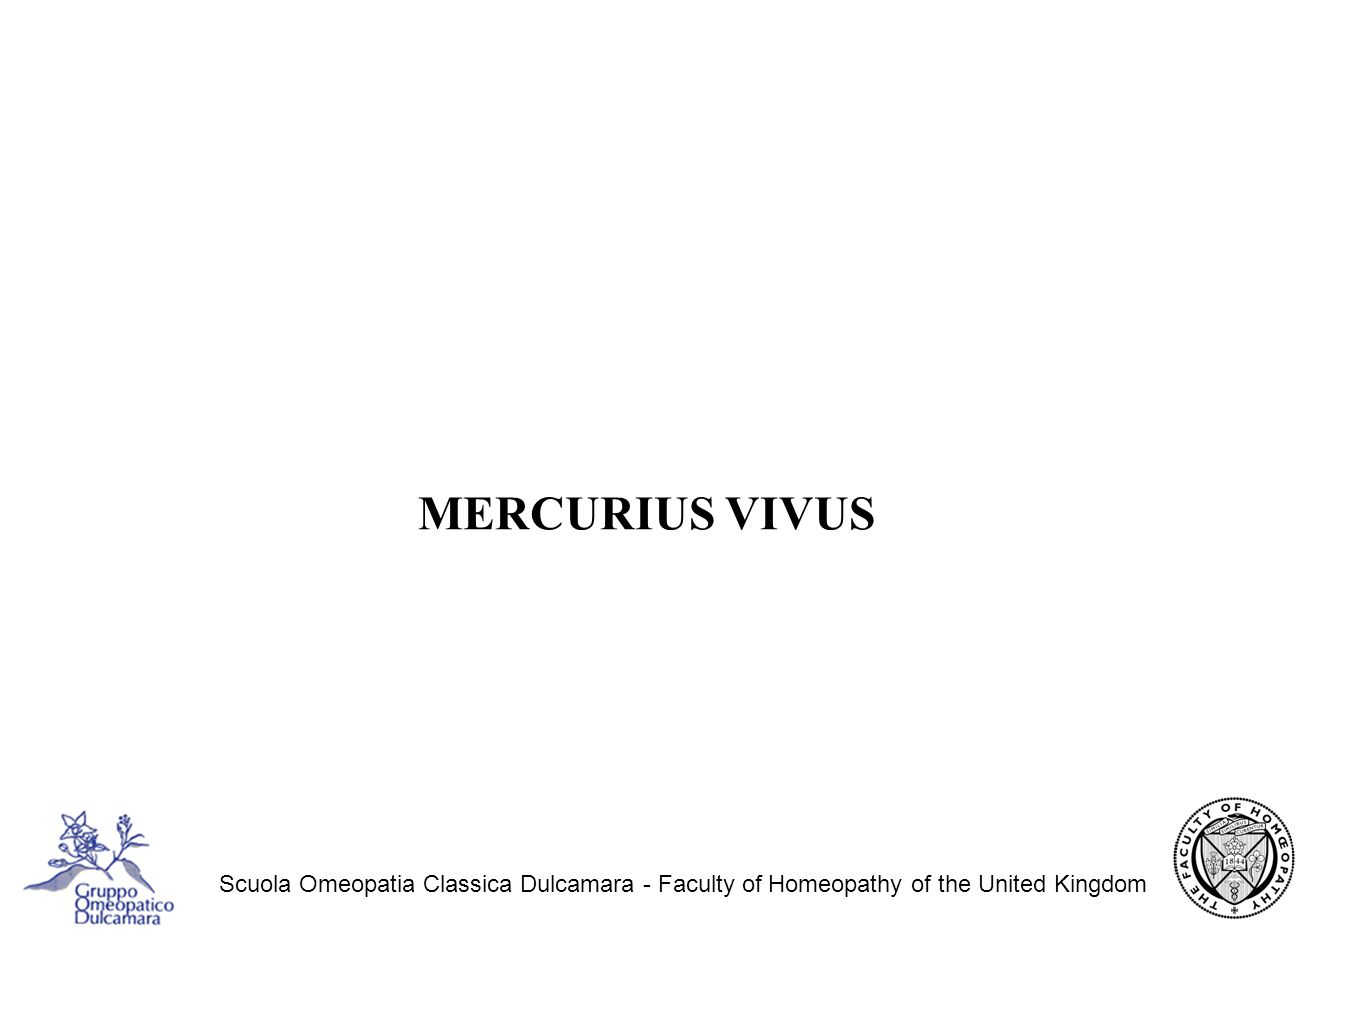 MERCURIUS VIVUS Scuola Omeopatia Classica Dulcamara - Faculty of Homeopathy of the United Kingdom